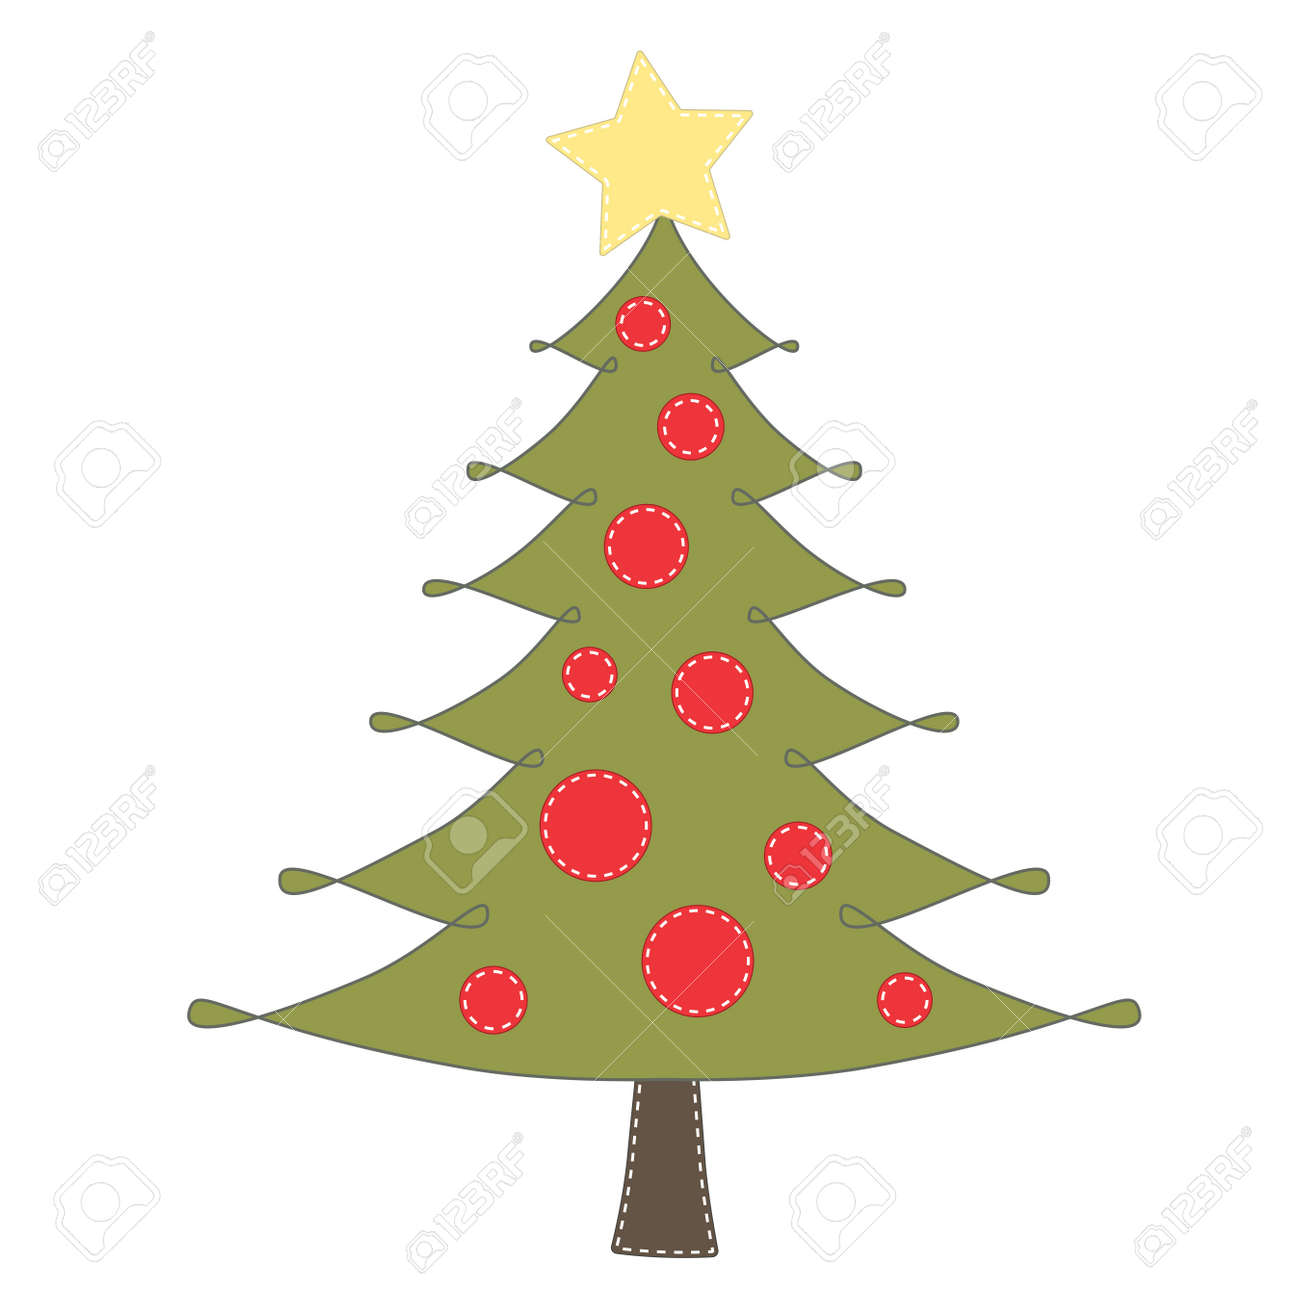 christmas tree clip art on transparent background for scrapbooking rh 123rf com clipart of christmas tree lights clipart black and white christmas tree